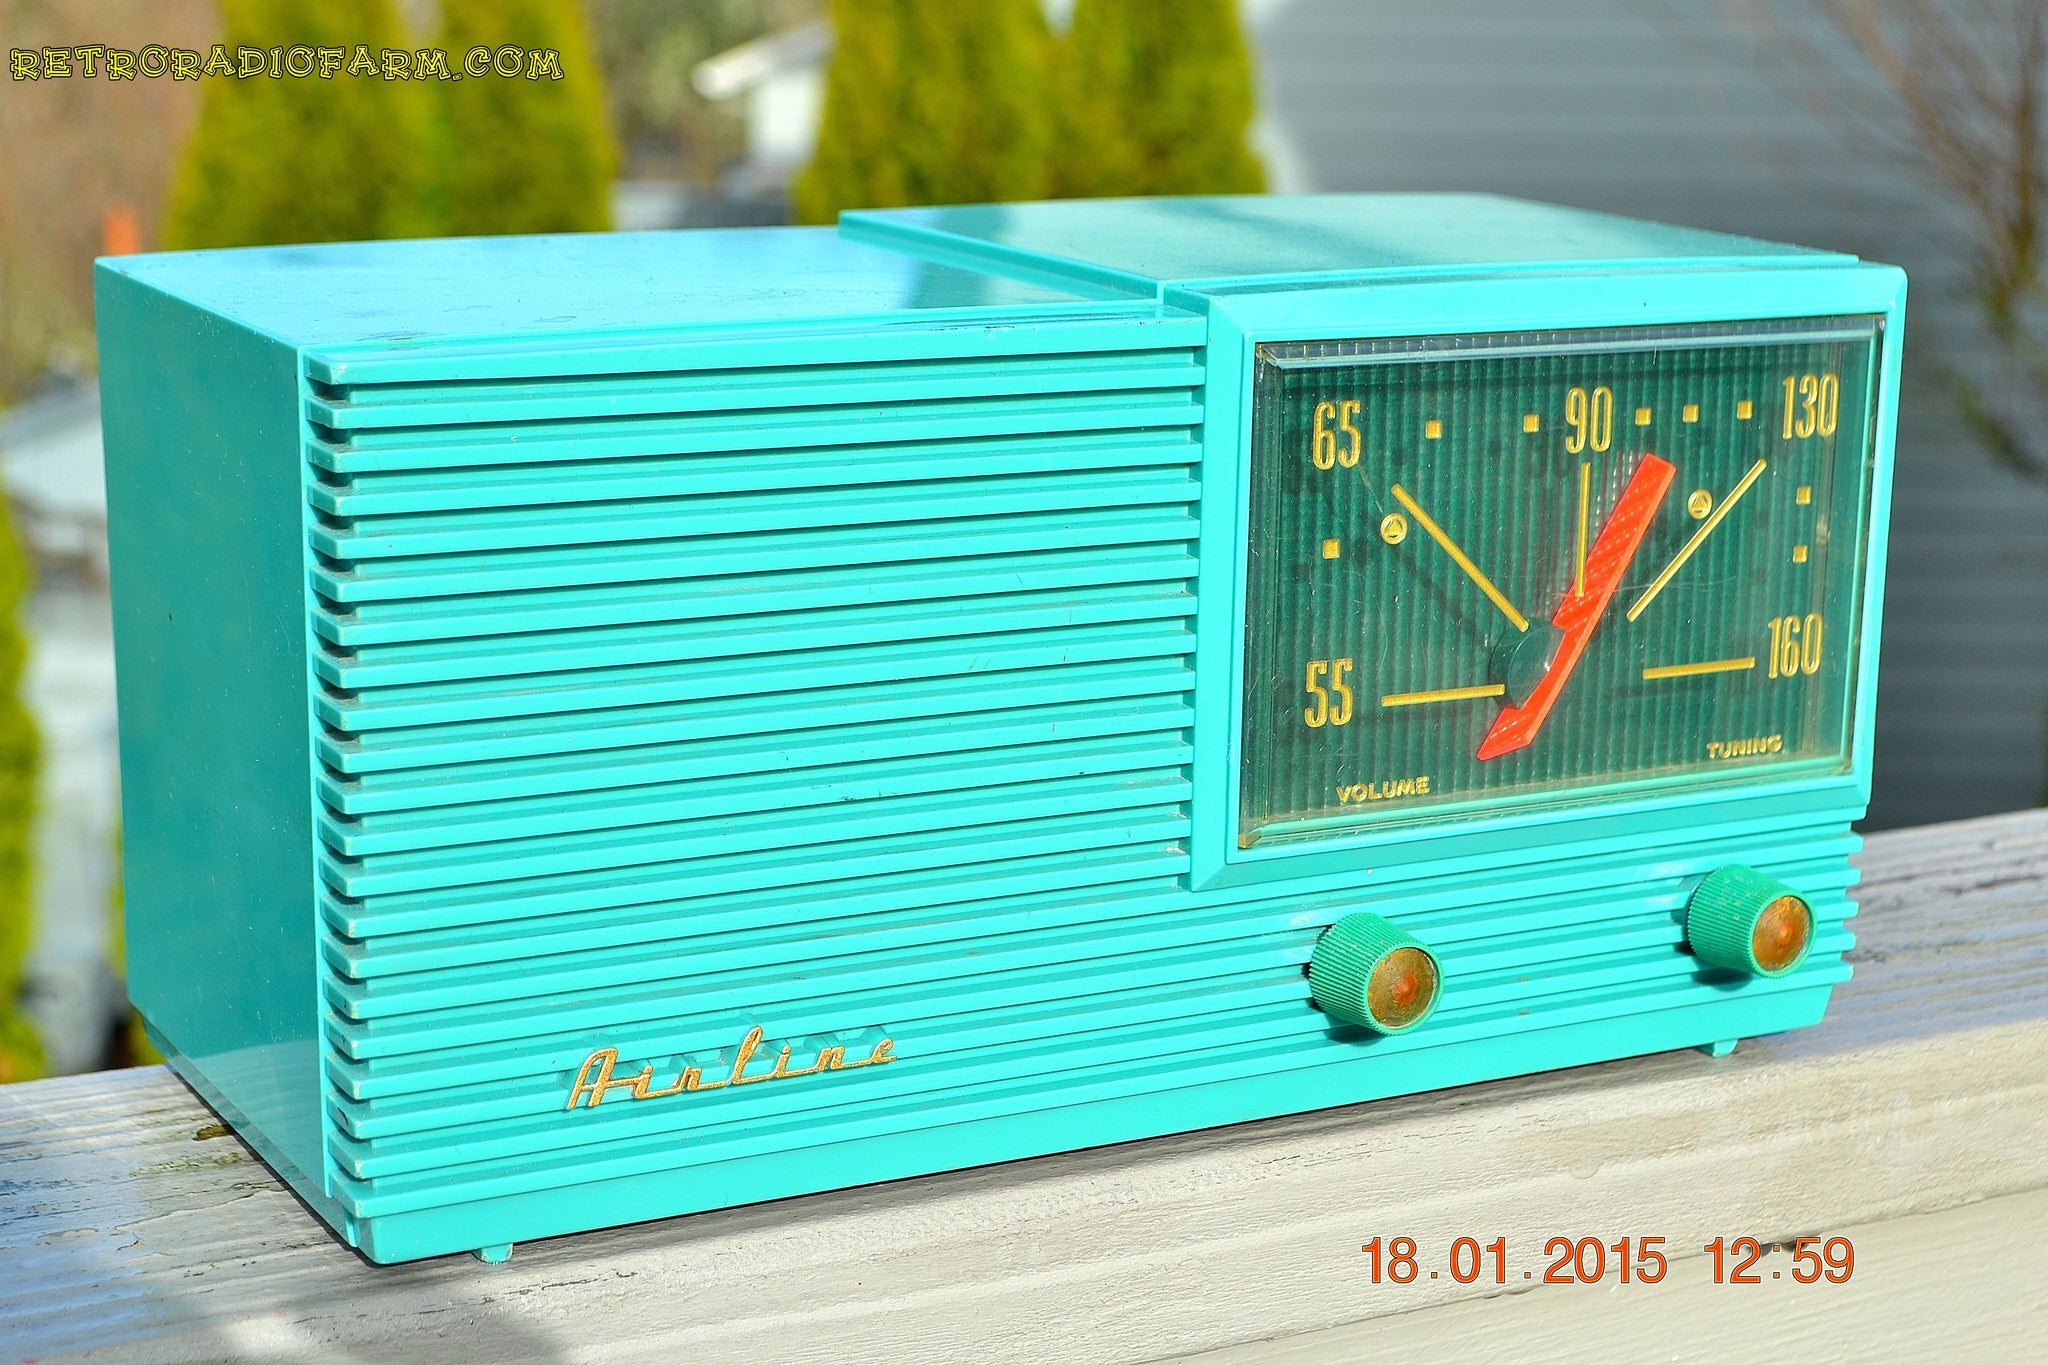 SOLD! - March 22, 2015 - MID CENTURY MARVEL Retro Jetsons Vintage Turquoise 1959 Airline DSE1625A AM Tube Radio Totally Restored! , Vintage Radio - Airline, Retro Radio Farm  - 1